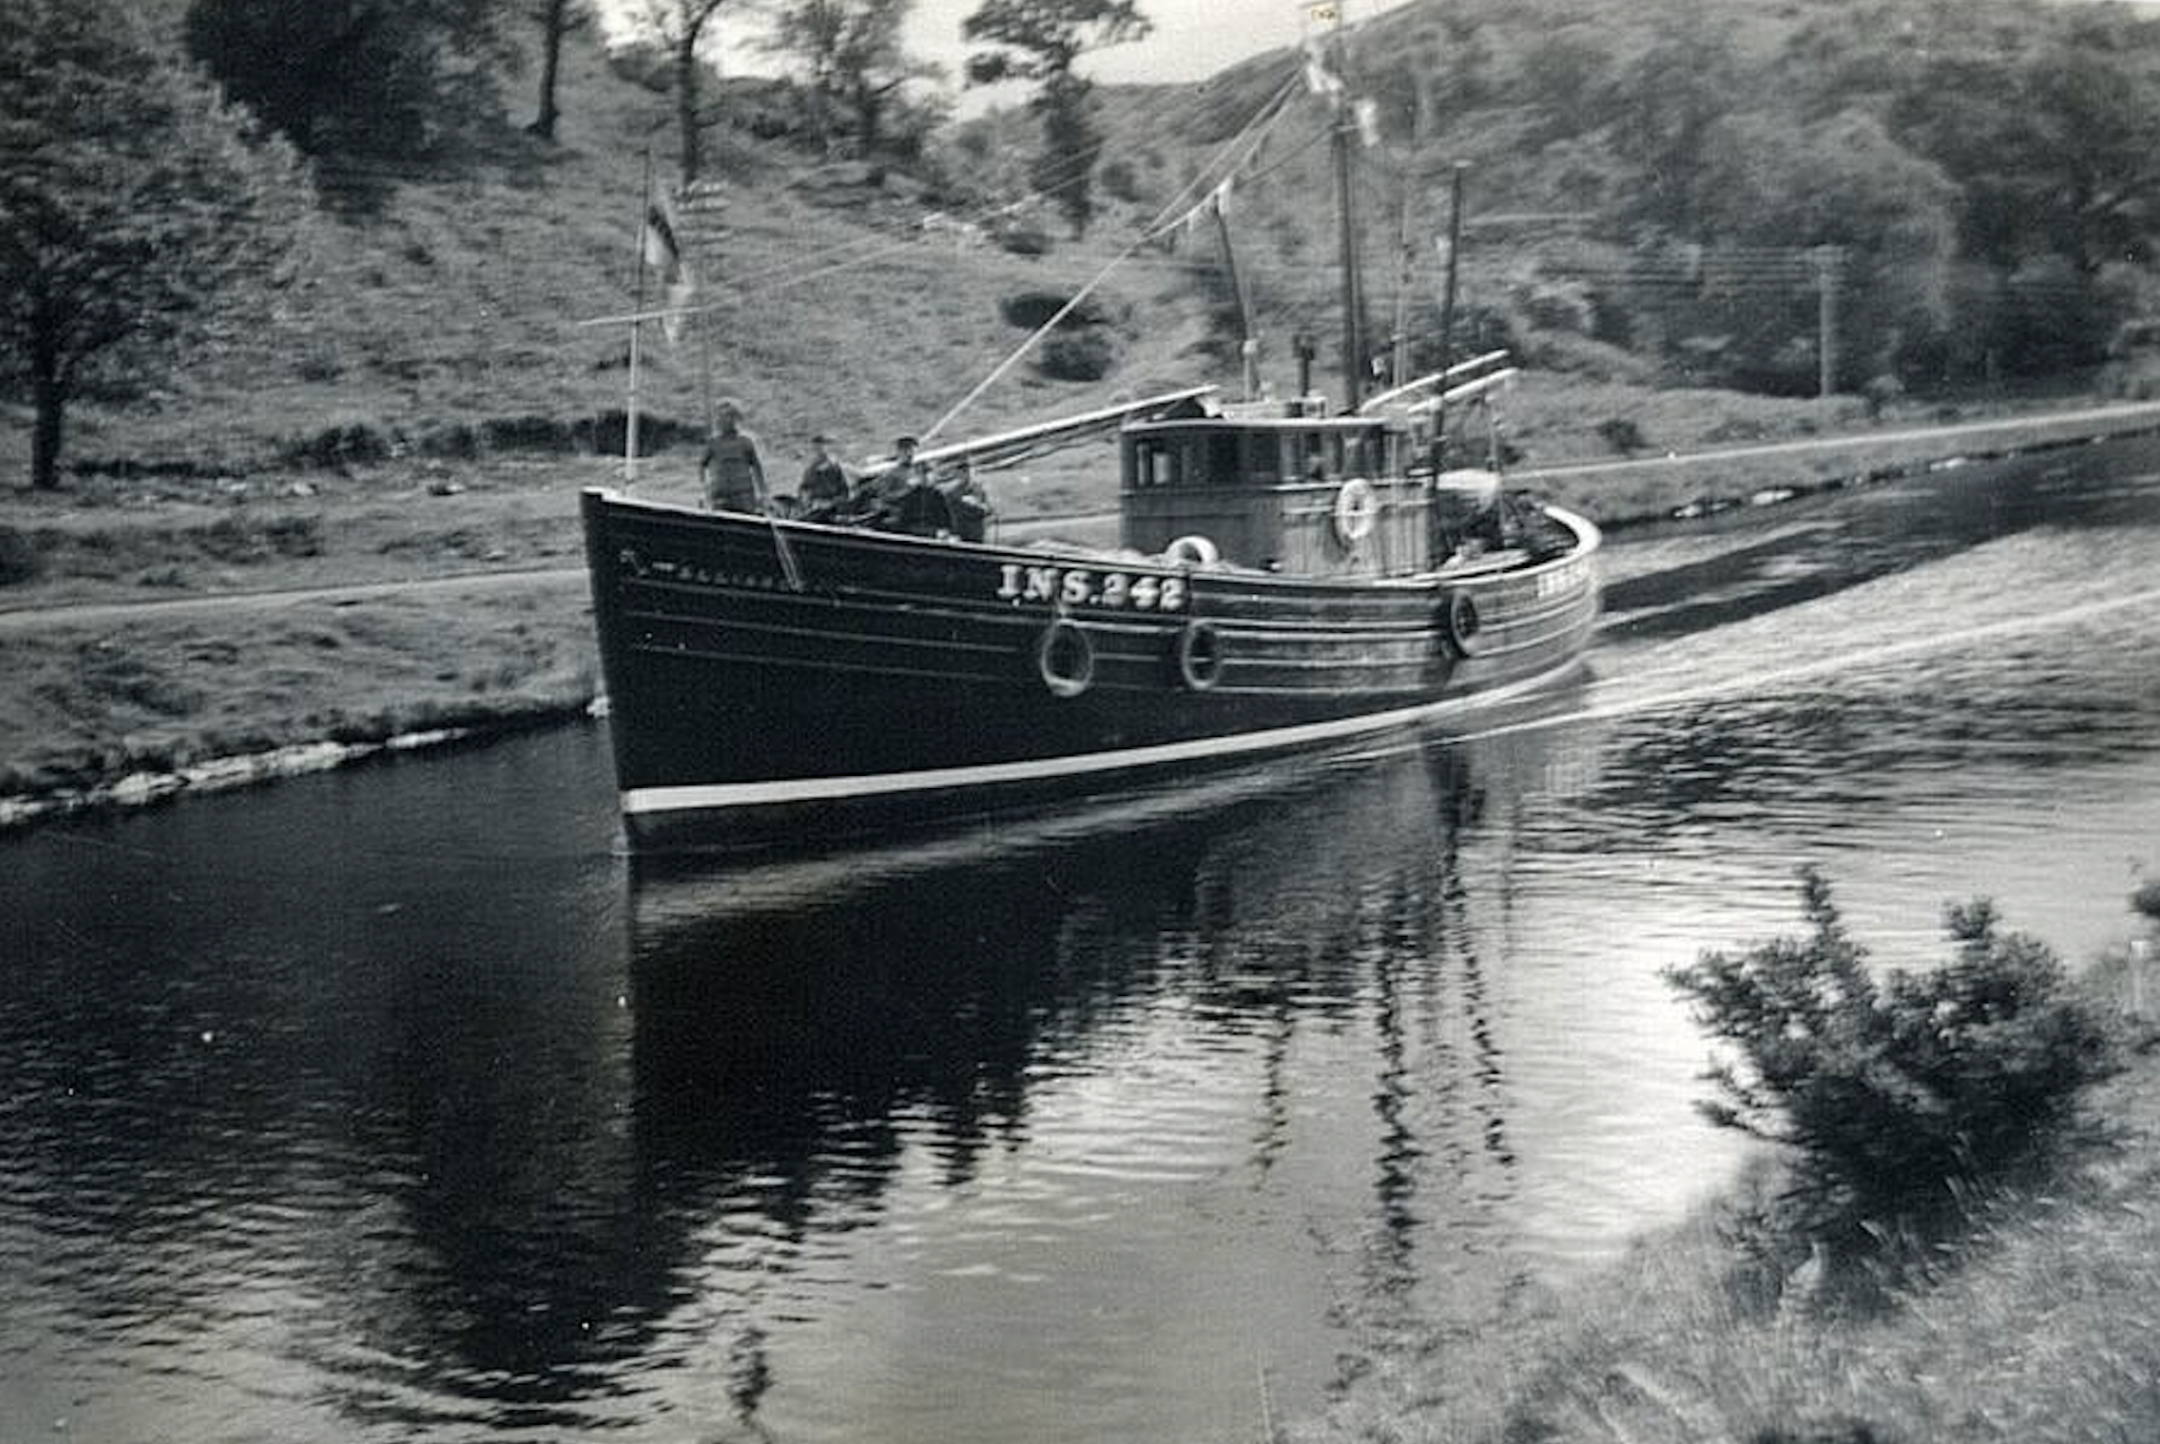 The Alliance Fishing Boat